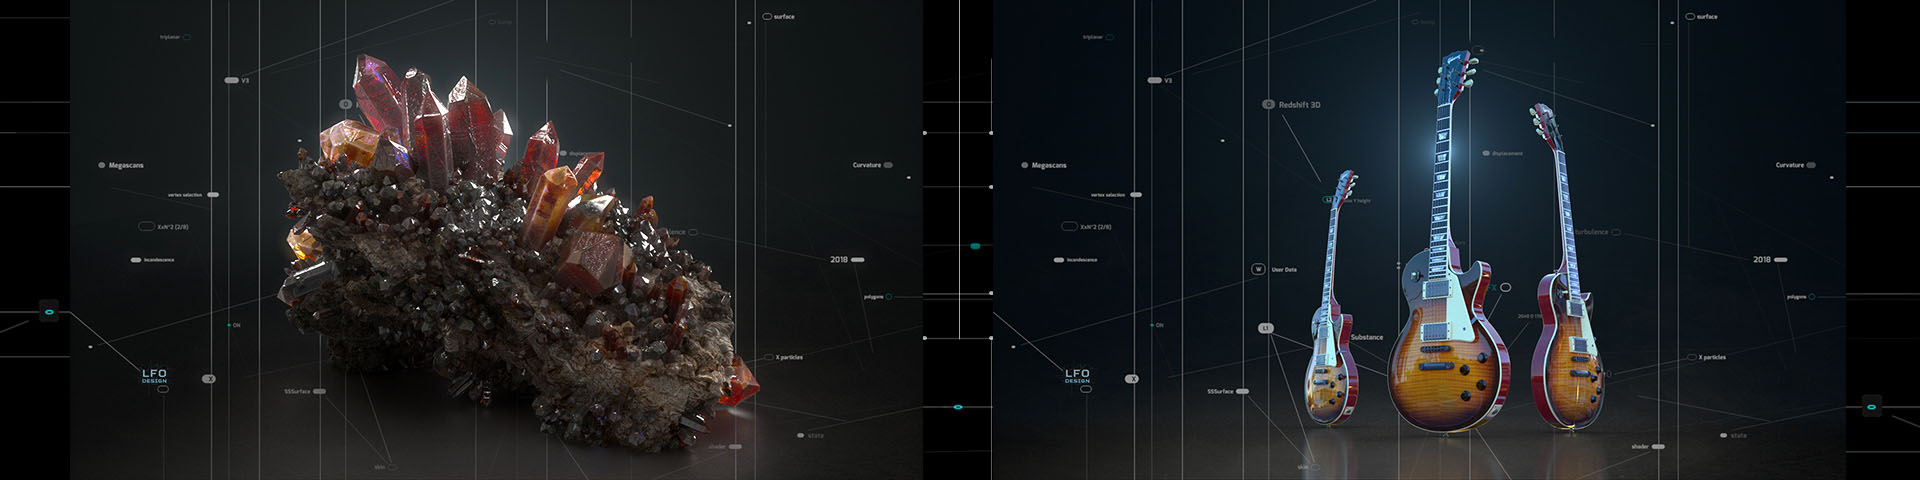 Complete List of Chapters Covered in Redshift 3D Course | LFO Design